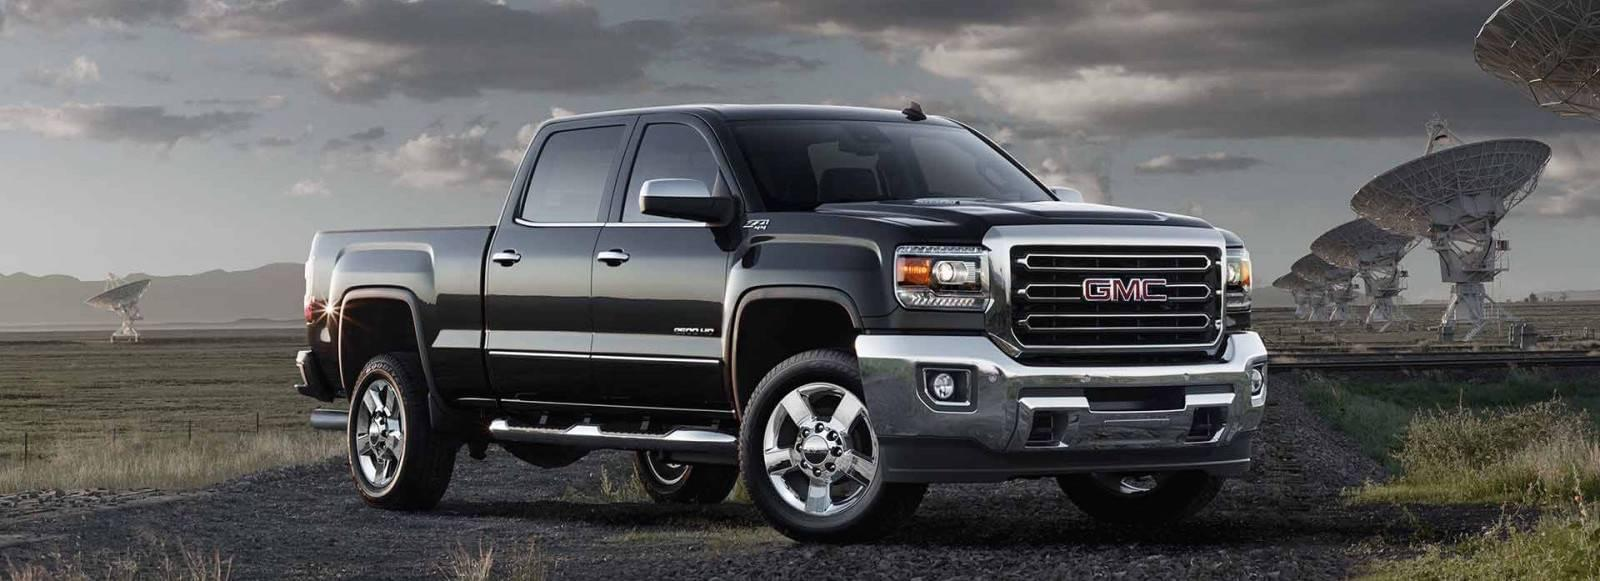 GMC Sierra Redesign